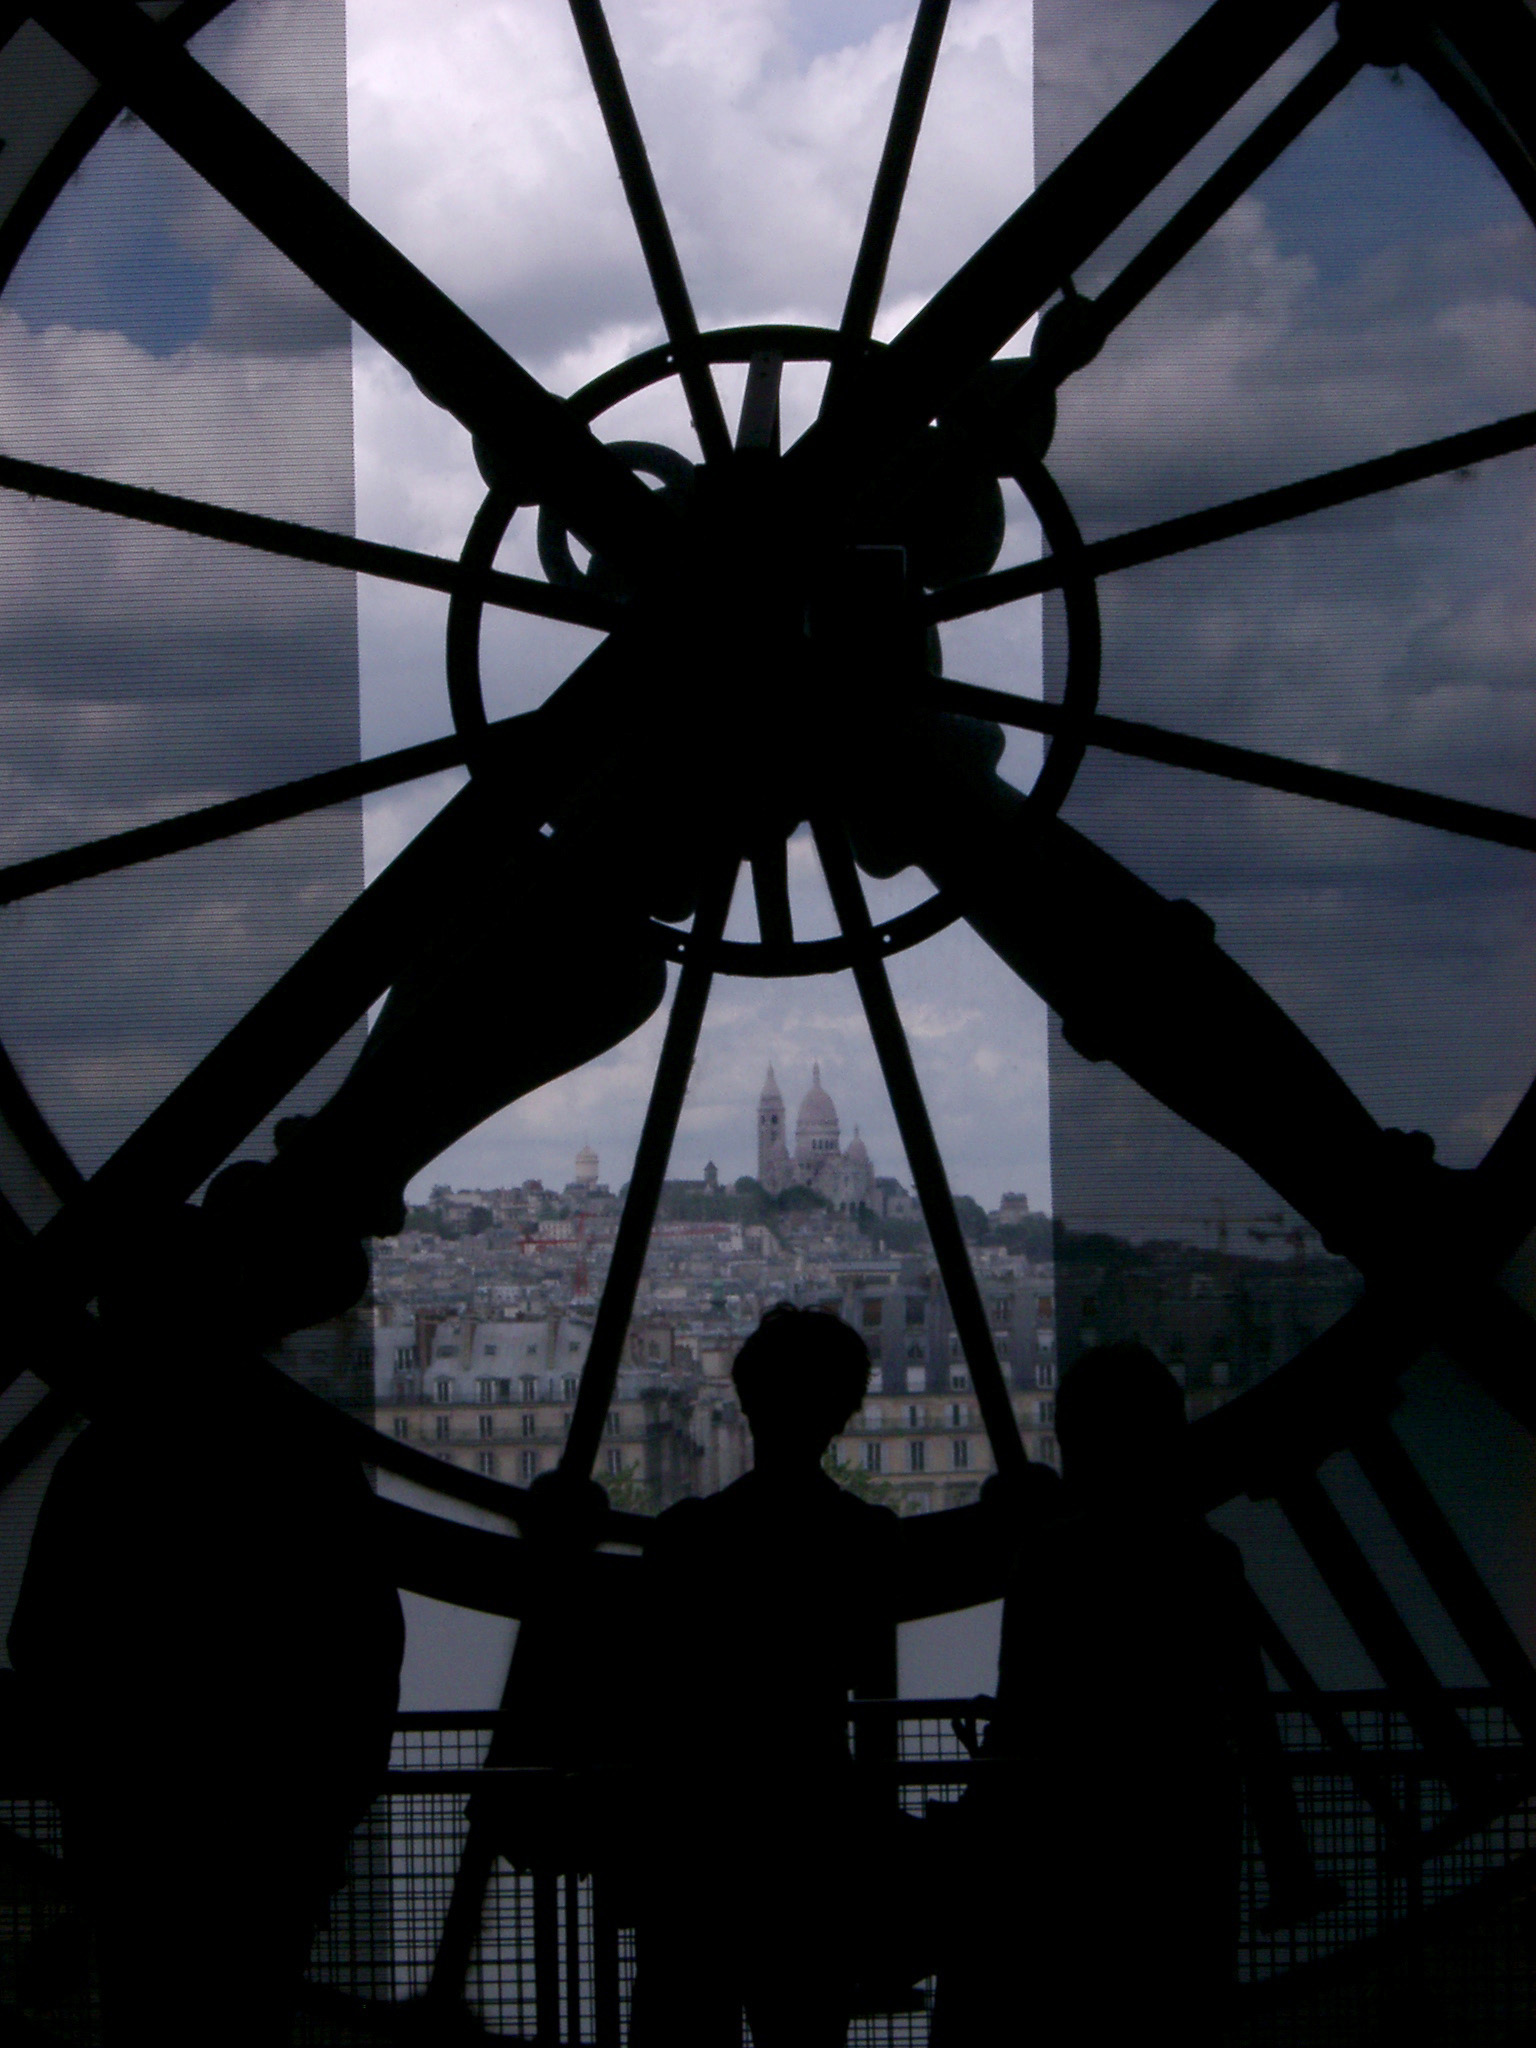 Silhouette of Person Admiring the View of Basilique du Sacre Coeur from Inside Musee d Orsay Clock Tower